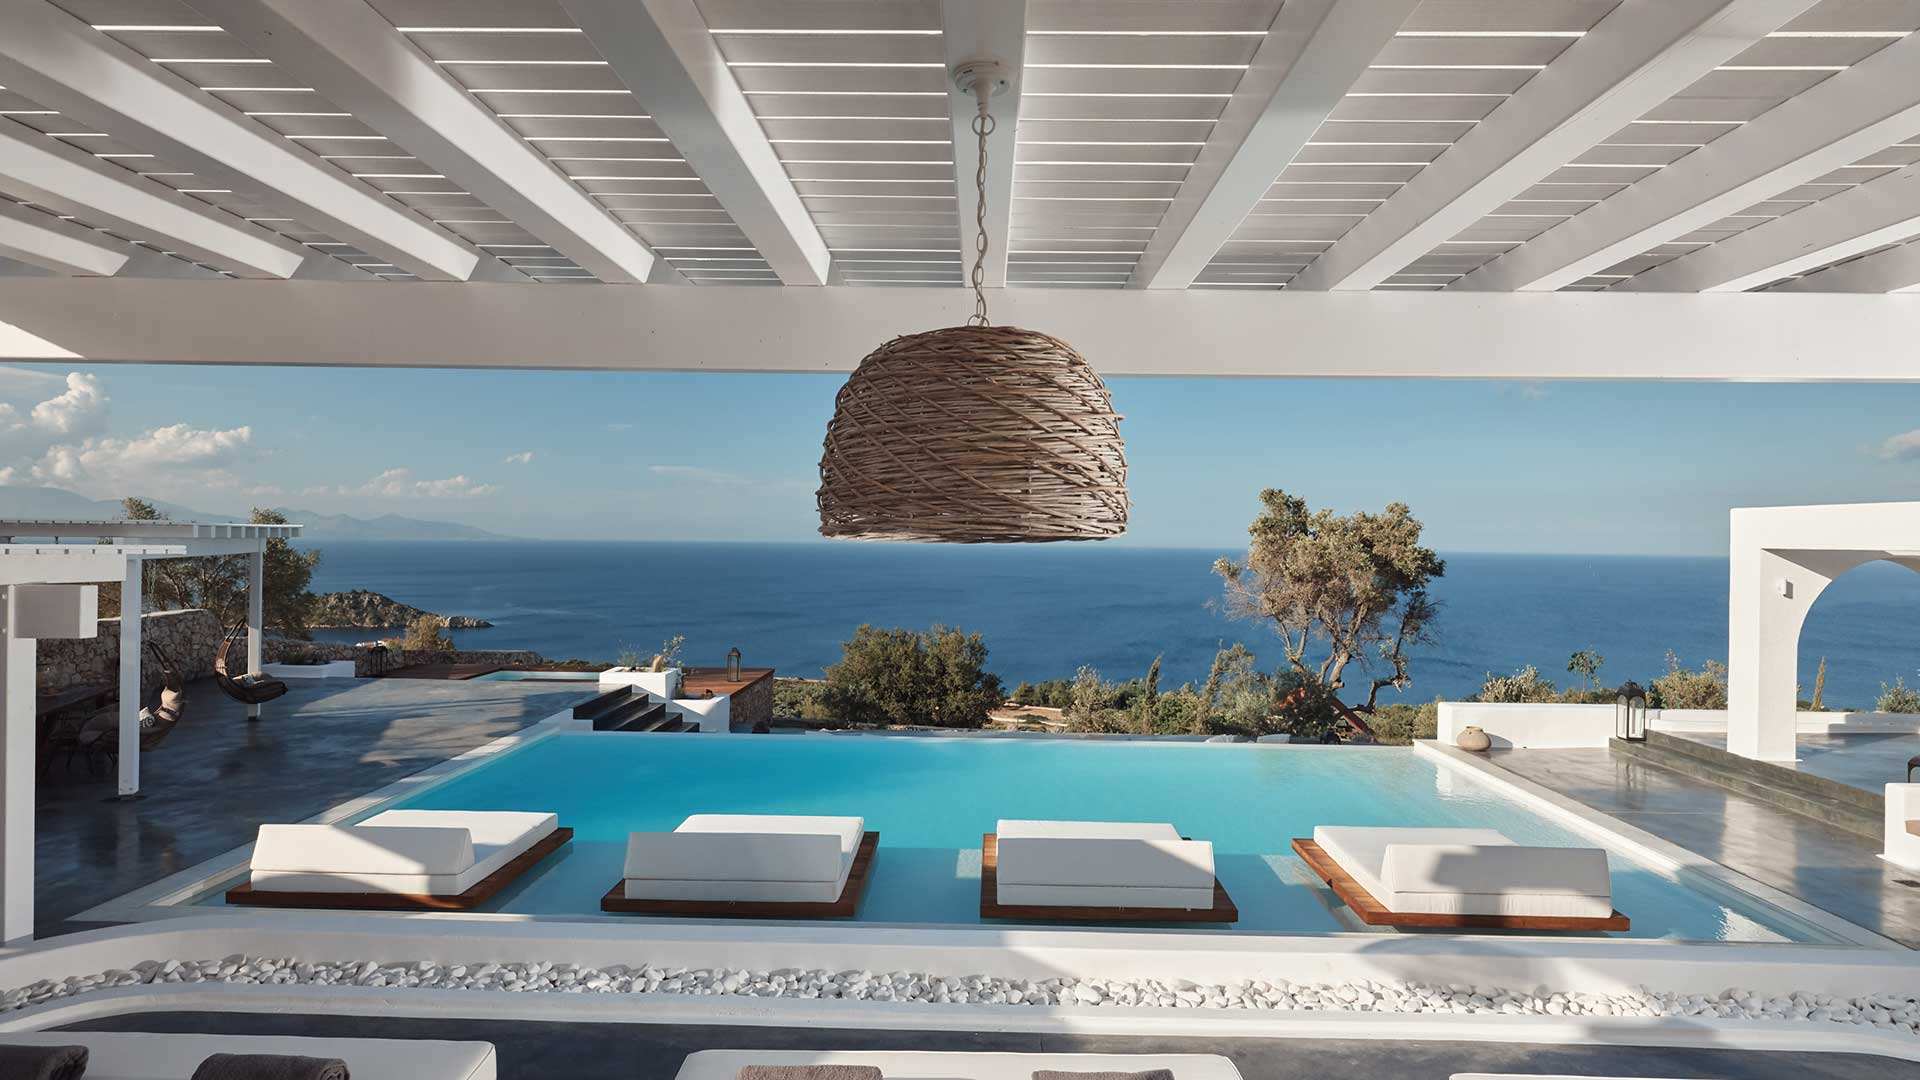 Zakynthos Luxury Hotels & Villas